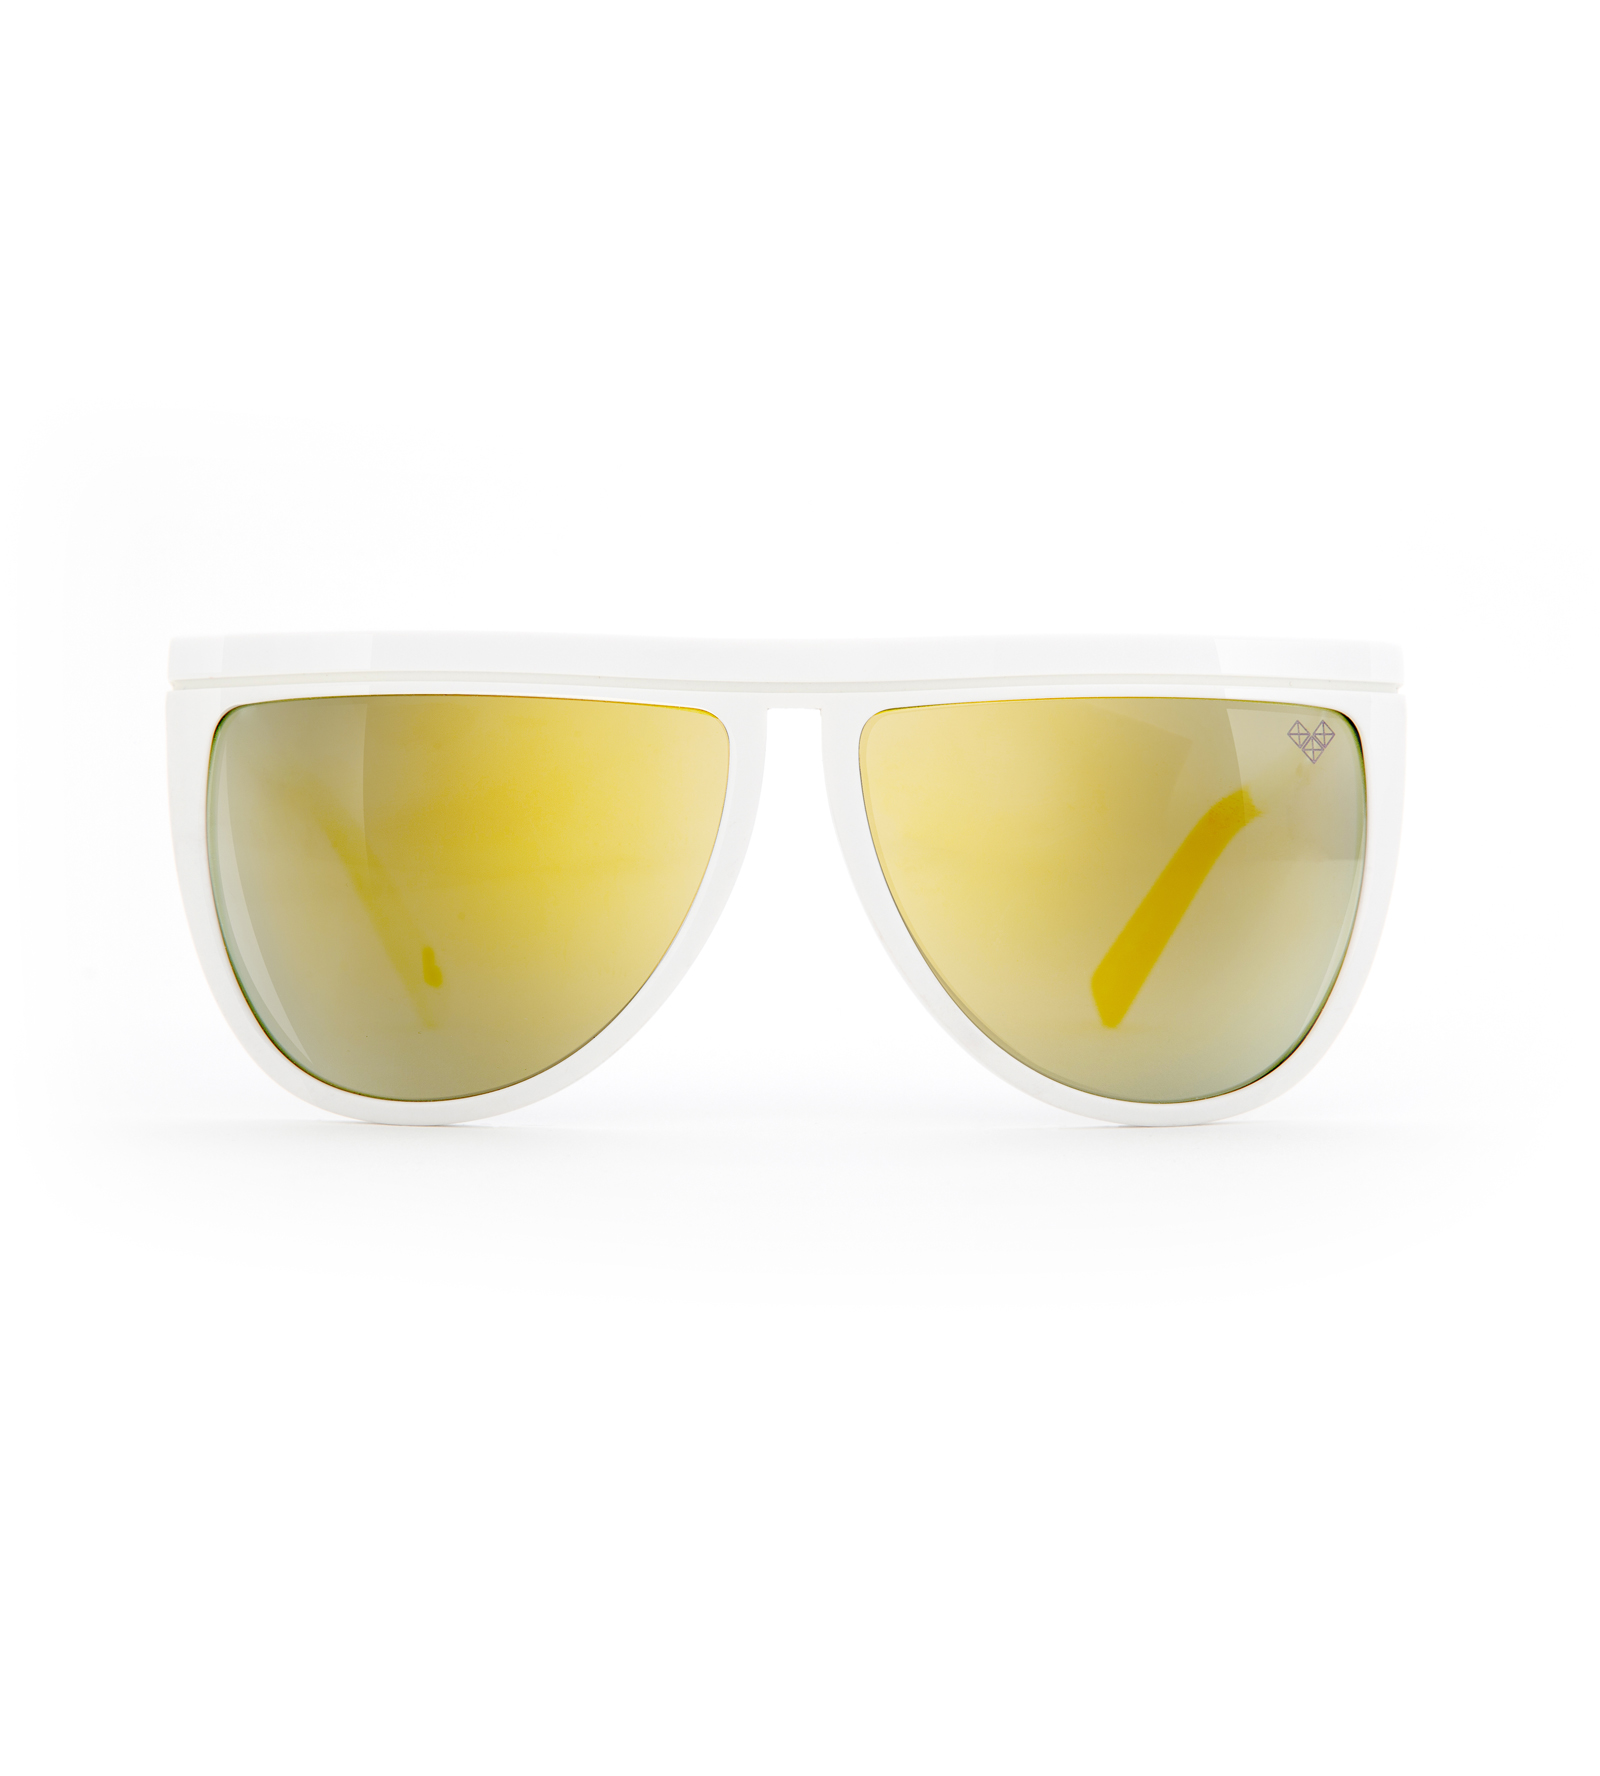 OMIKU-Om8G with Gold Mirror Coating Lenses